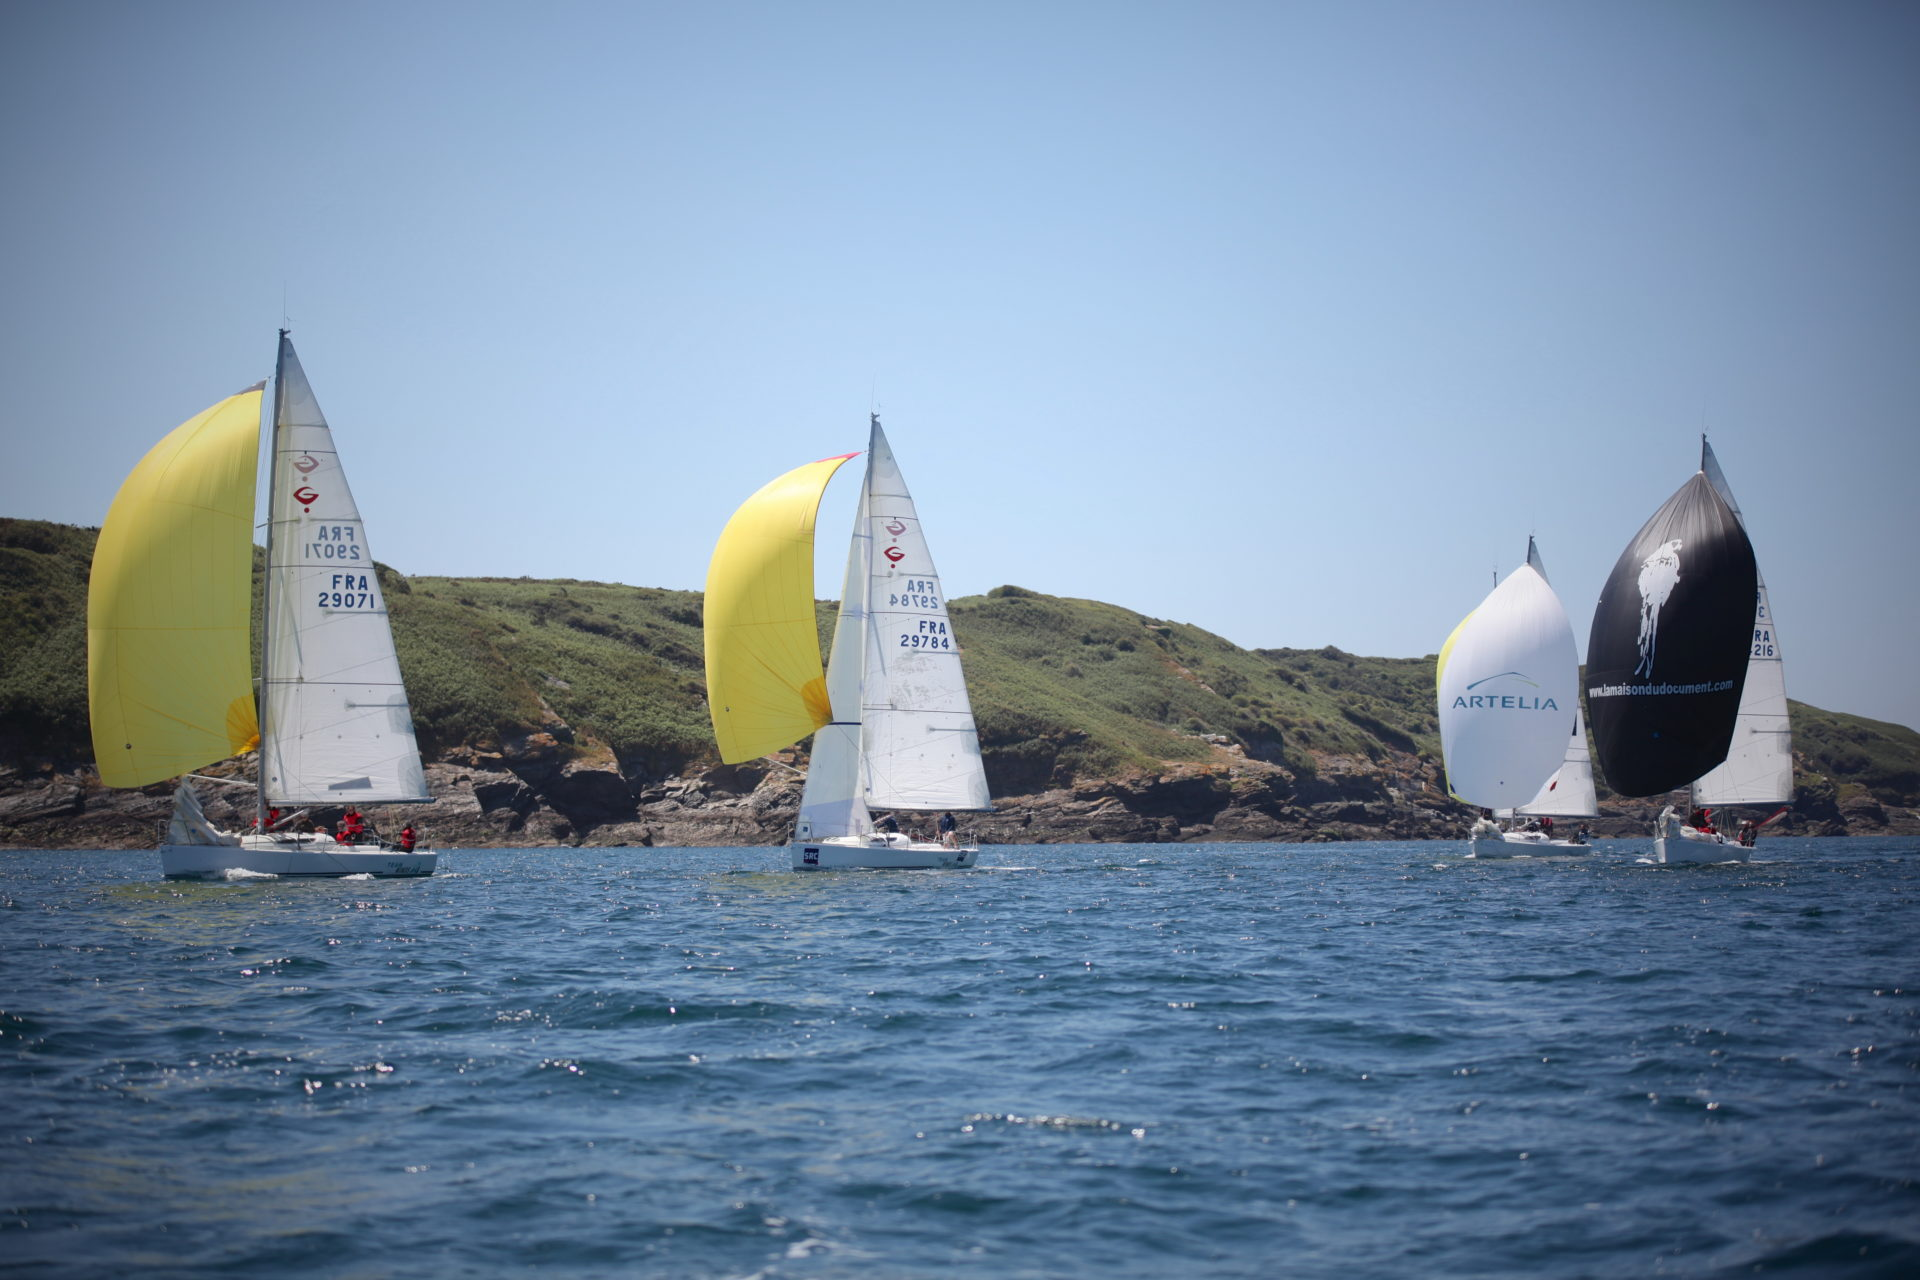 Team Winds - la Trinite sur Mer - regates incentive teambuilding voile (11)